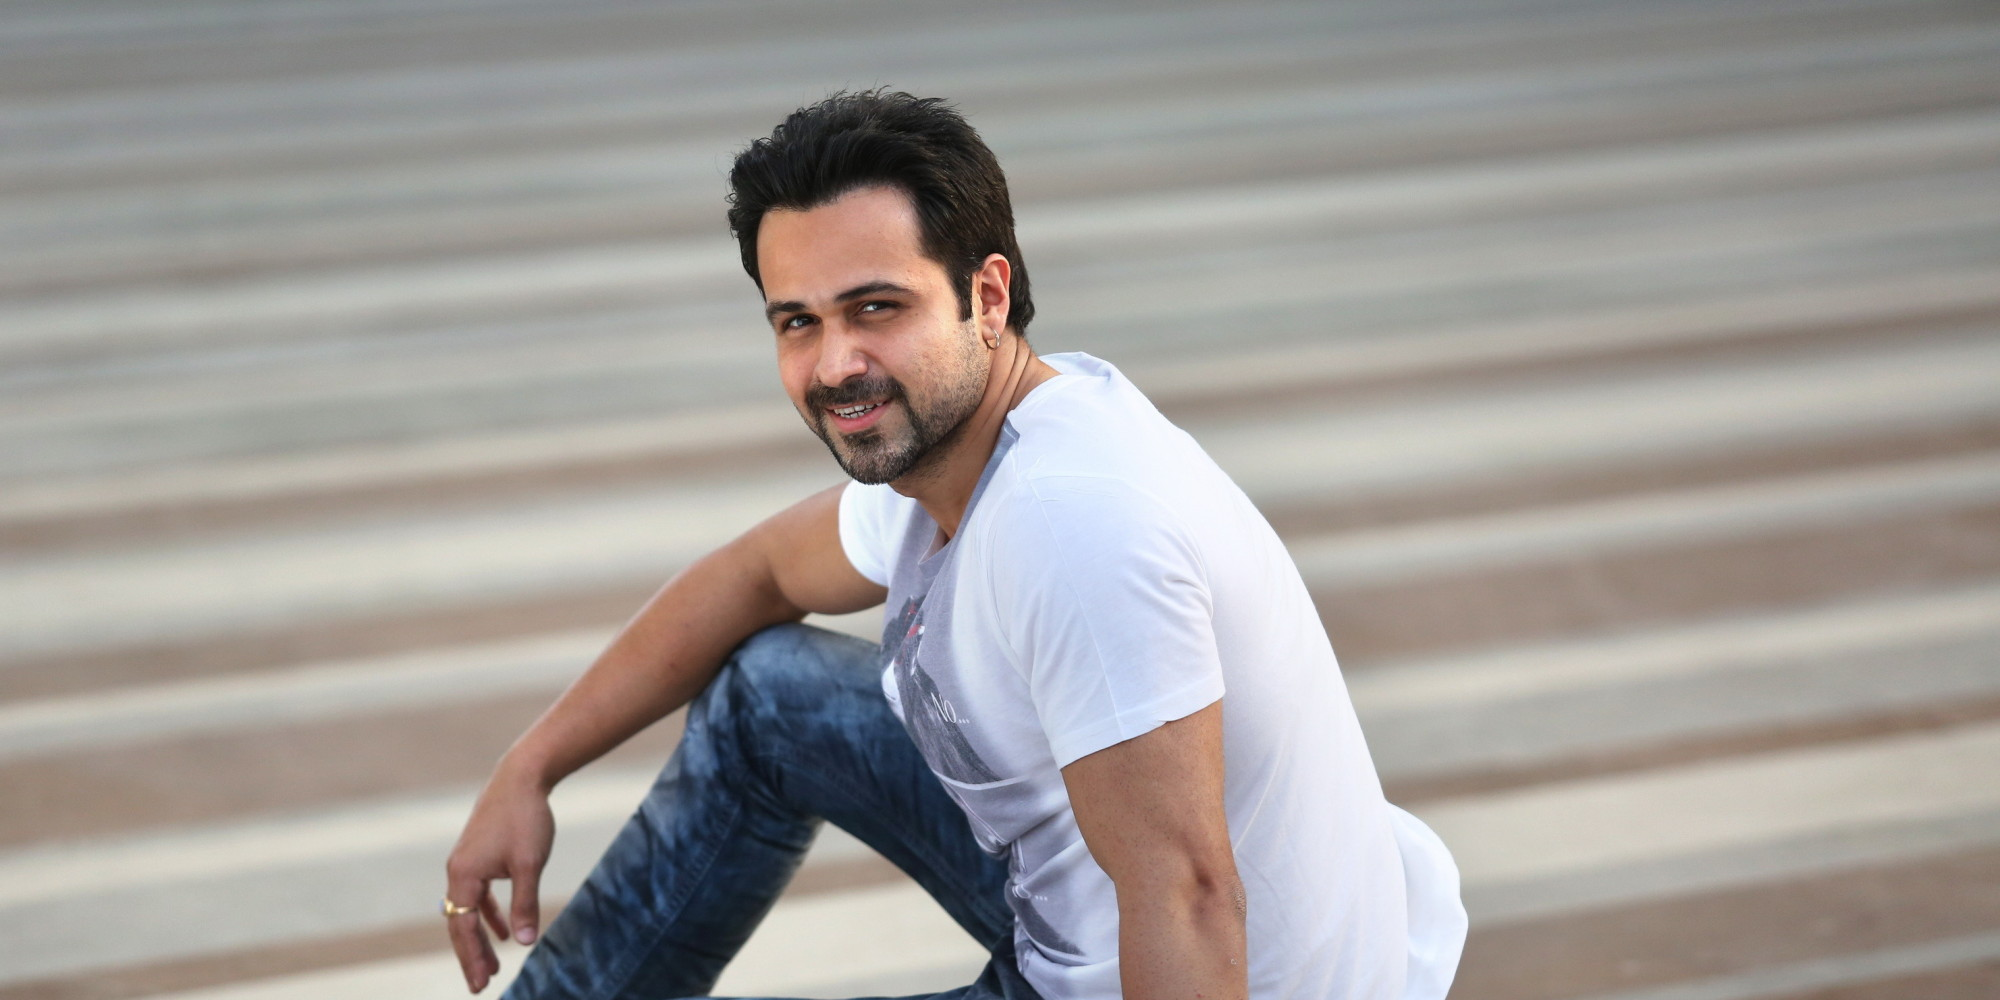 Emraan Hashmi Wallpapers High Resolution And Quality Download